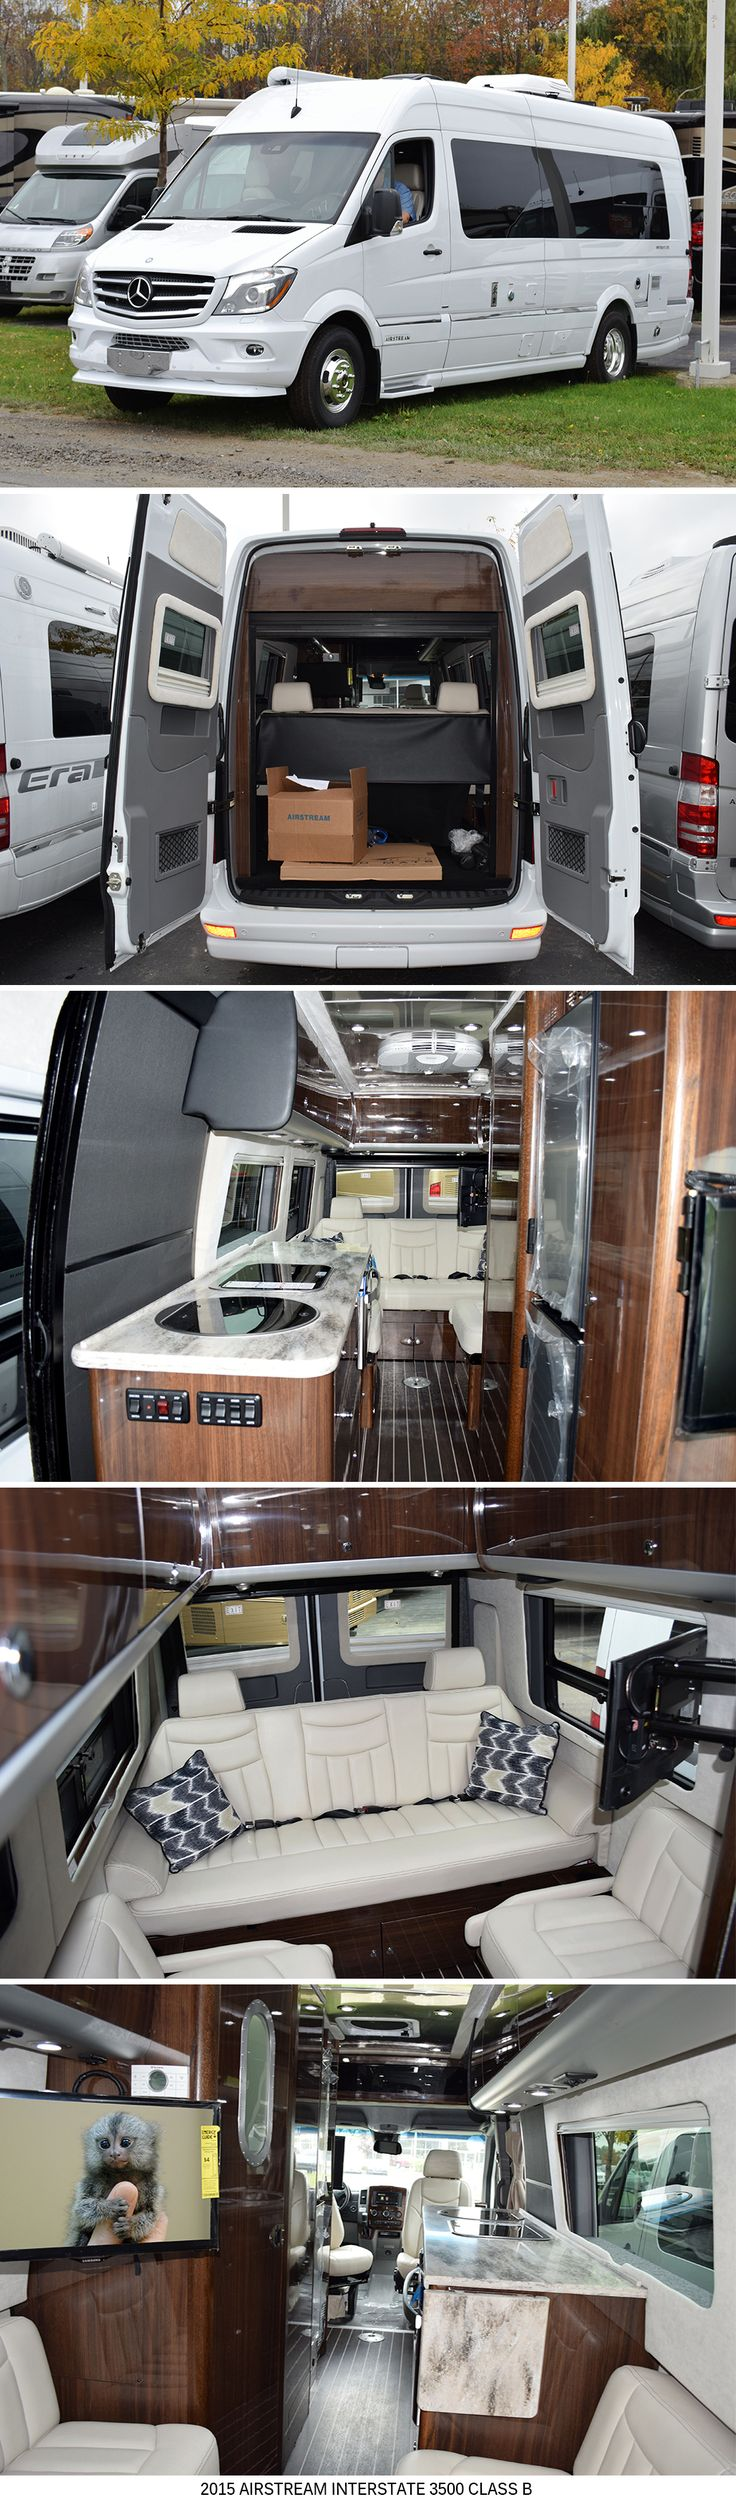 2015 Airstream Interstate GRAND TOUR EXT